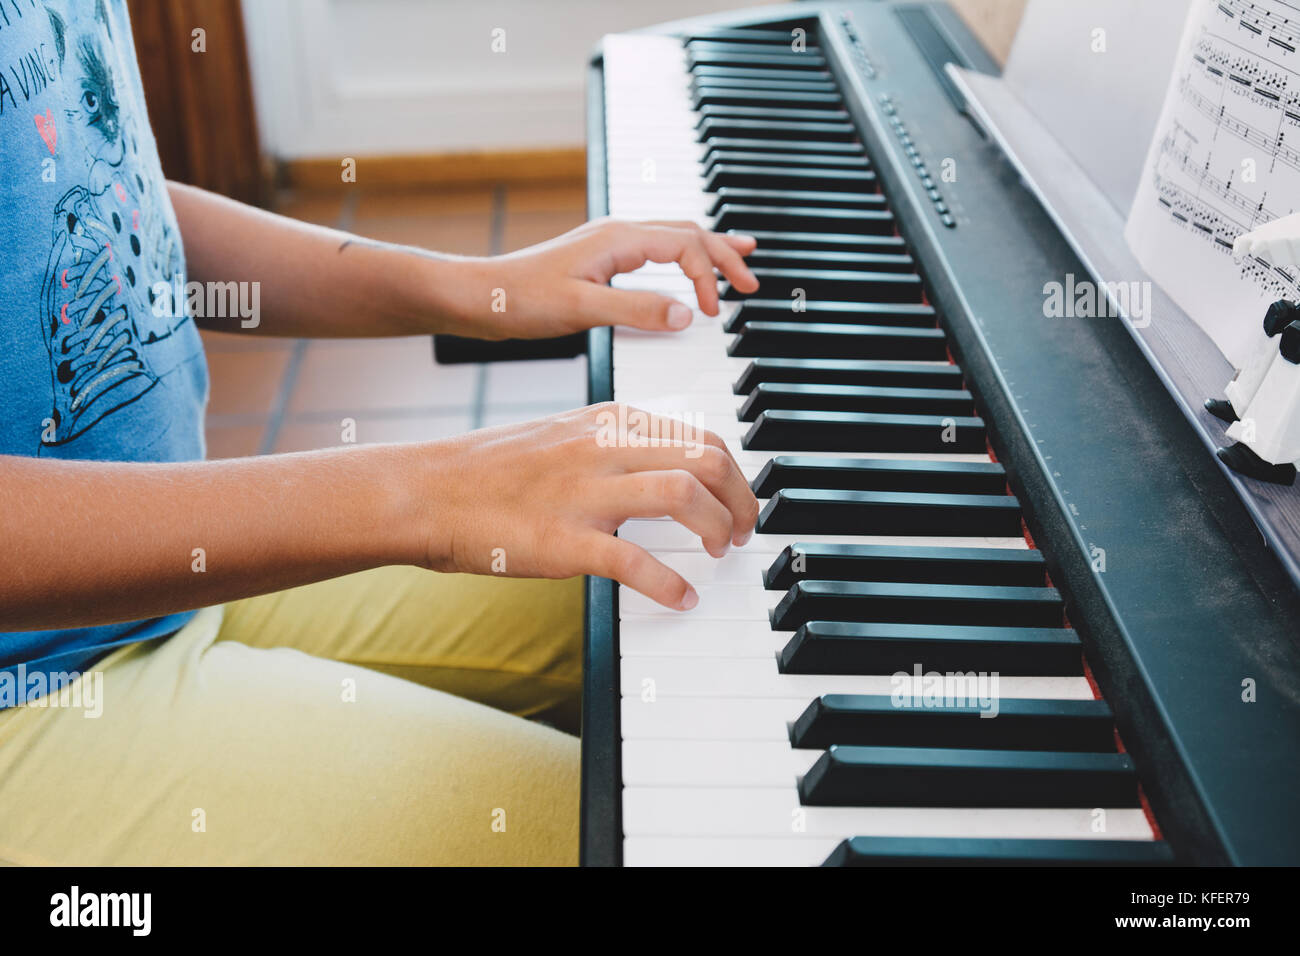 9-year-old girl playing the electric piano in front of the score book - Stock Image